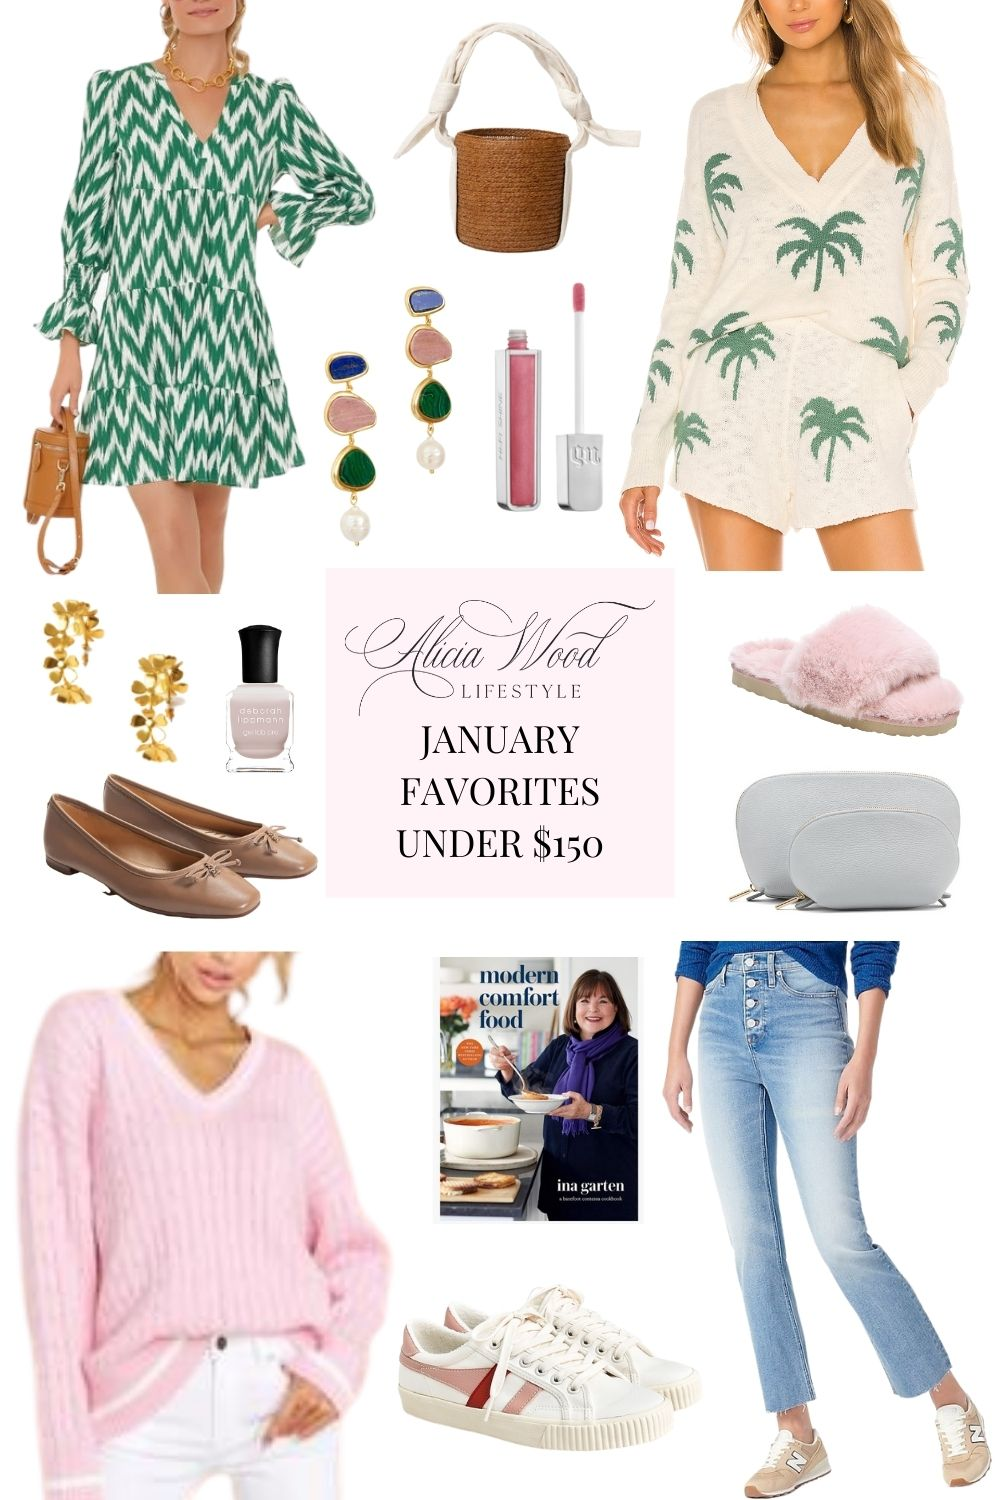 January 2021 Favorites Under $150